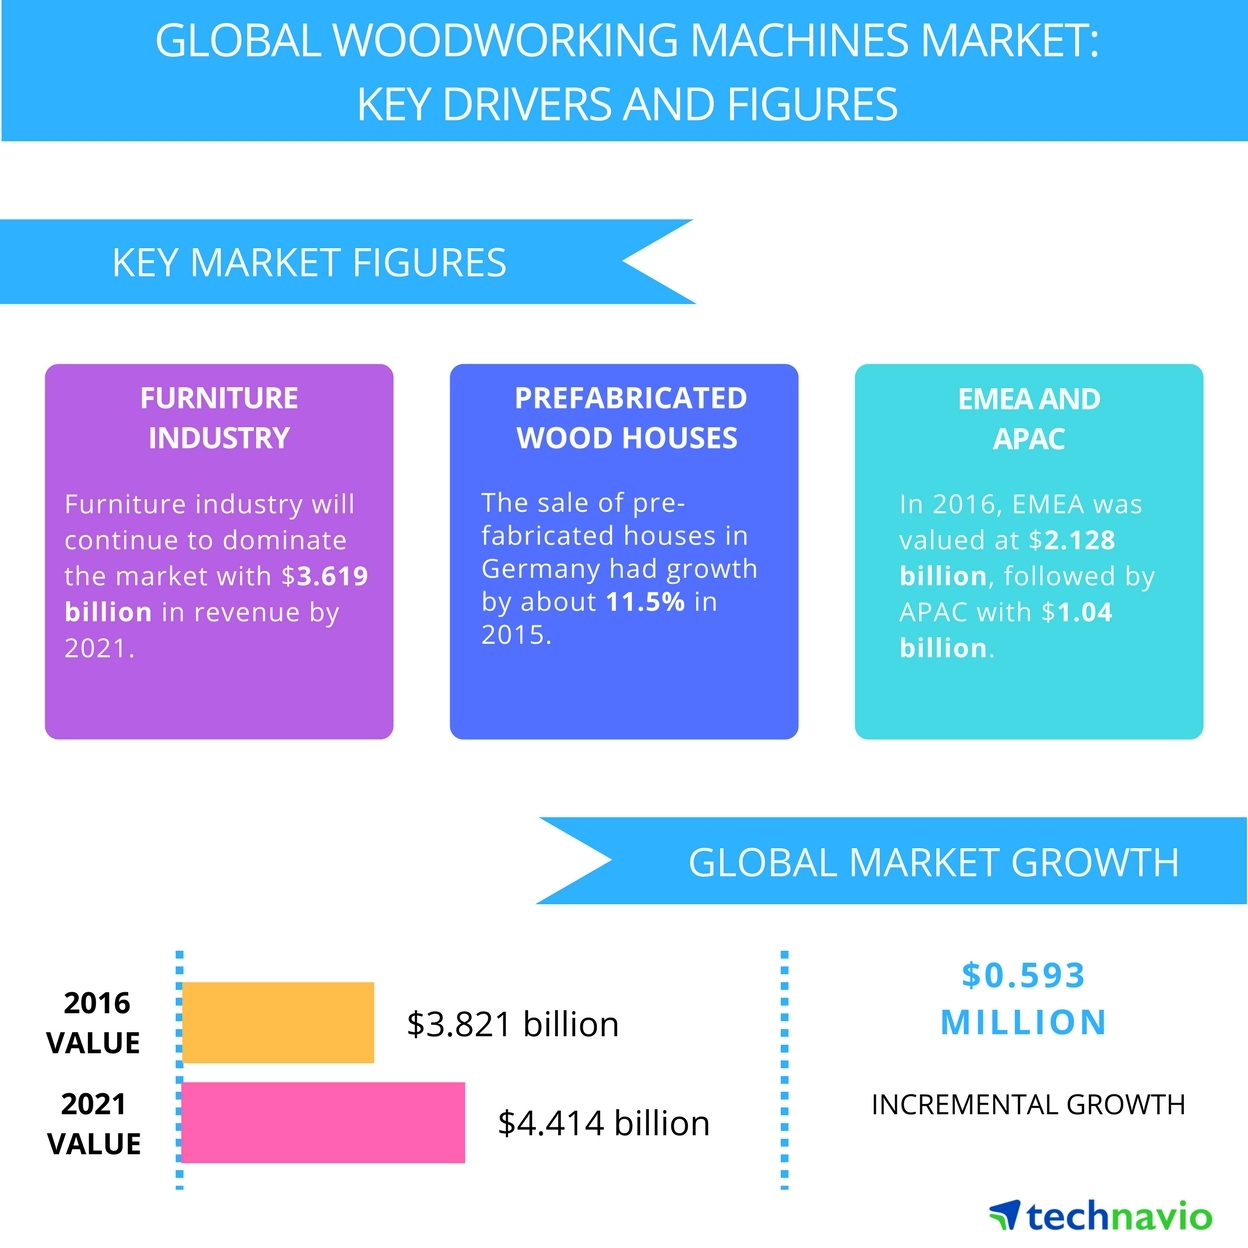 Technavio has published a new report on the global woodworking machines market from 2017-2021. (Graphic: Business Wire)